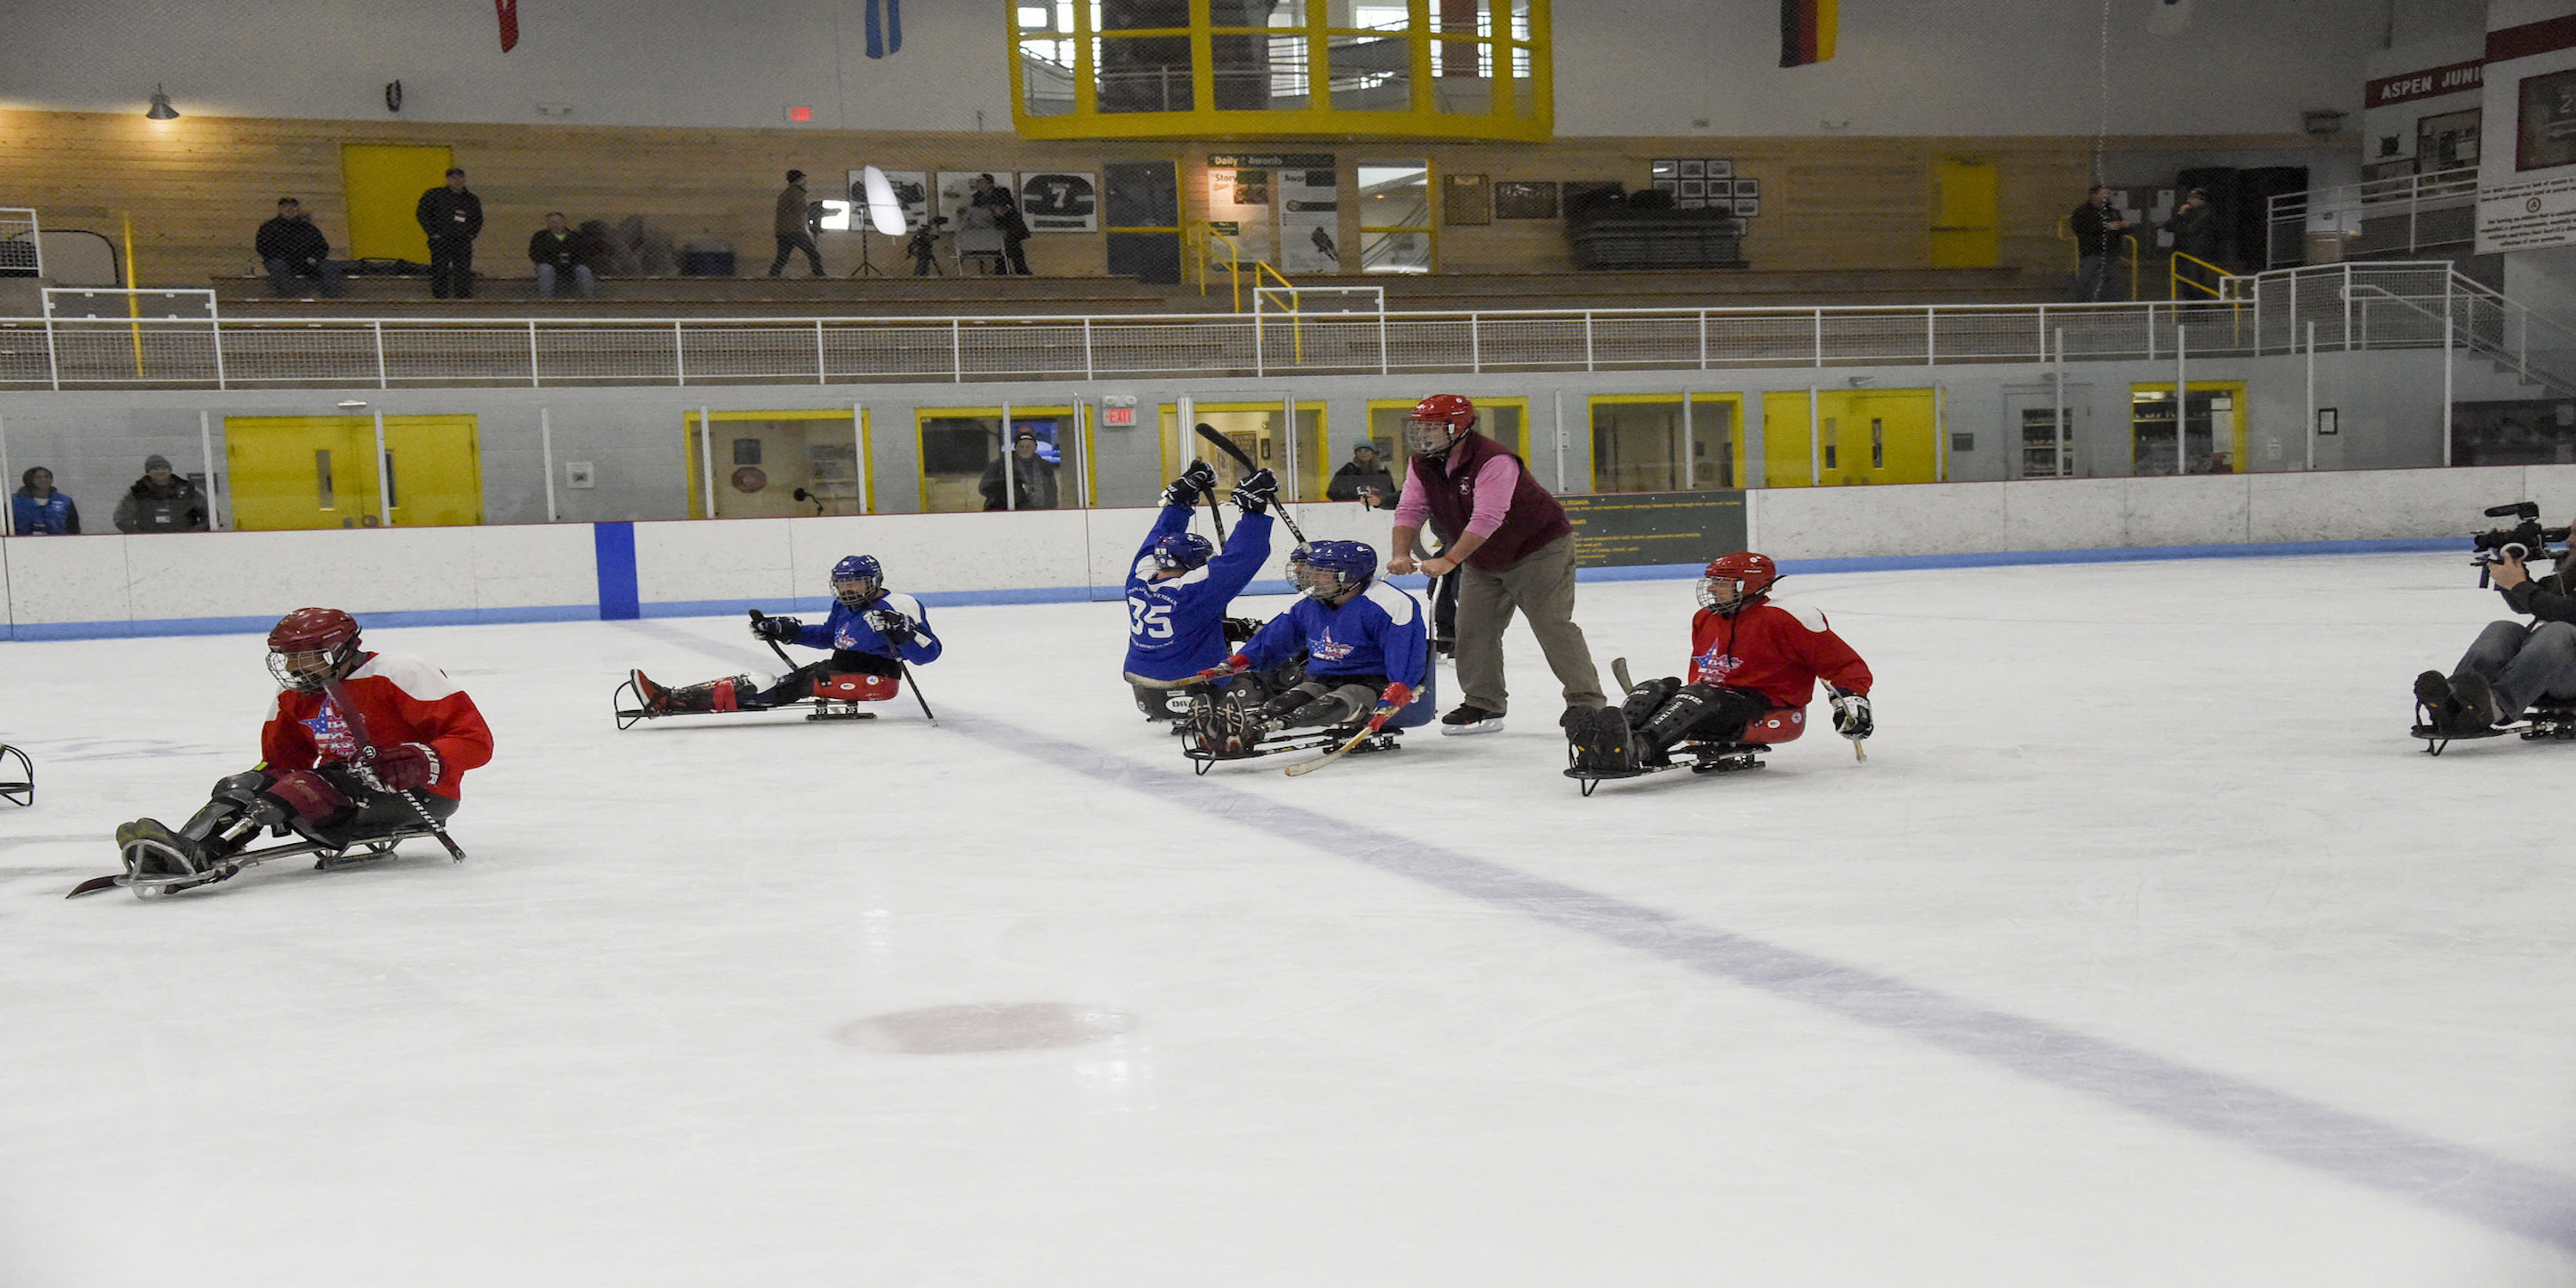 disabled veterans enaging in ice hockey.